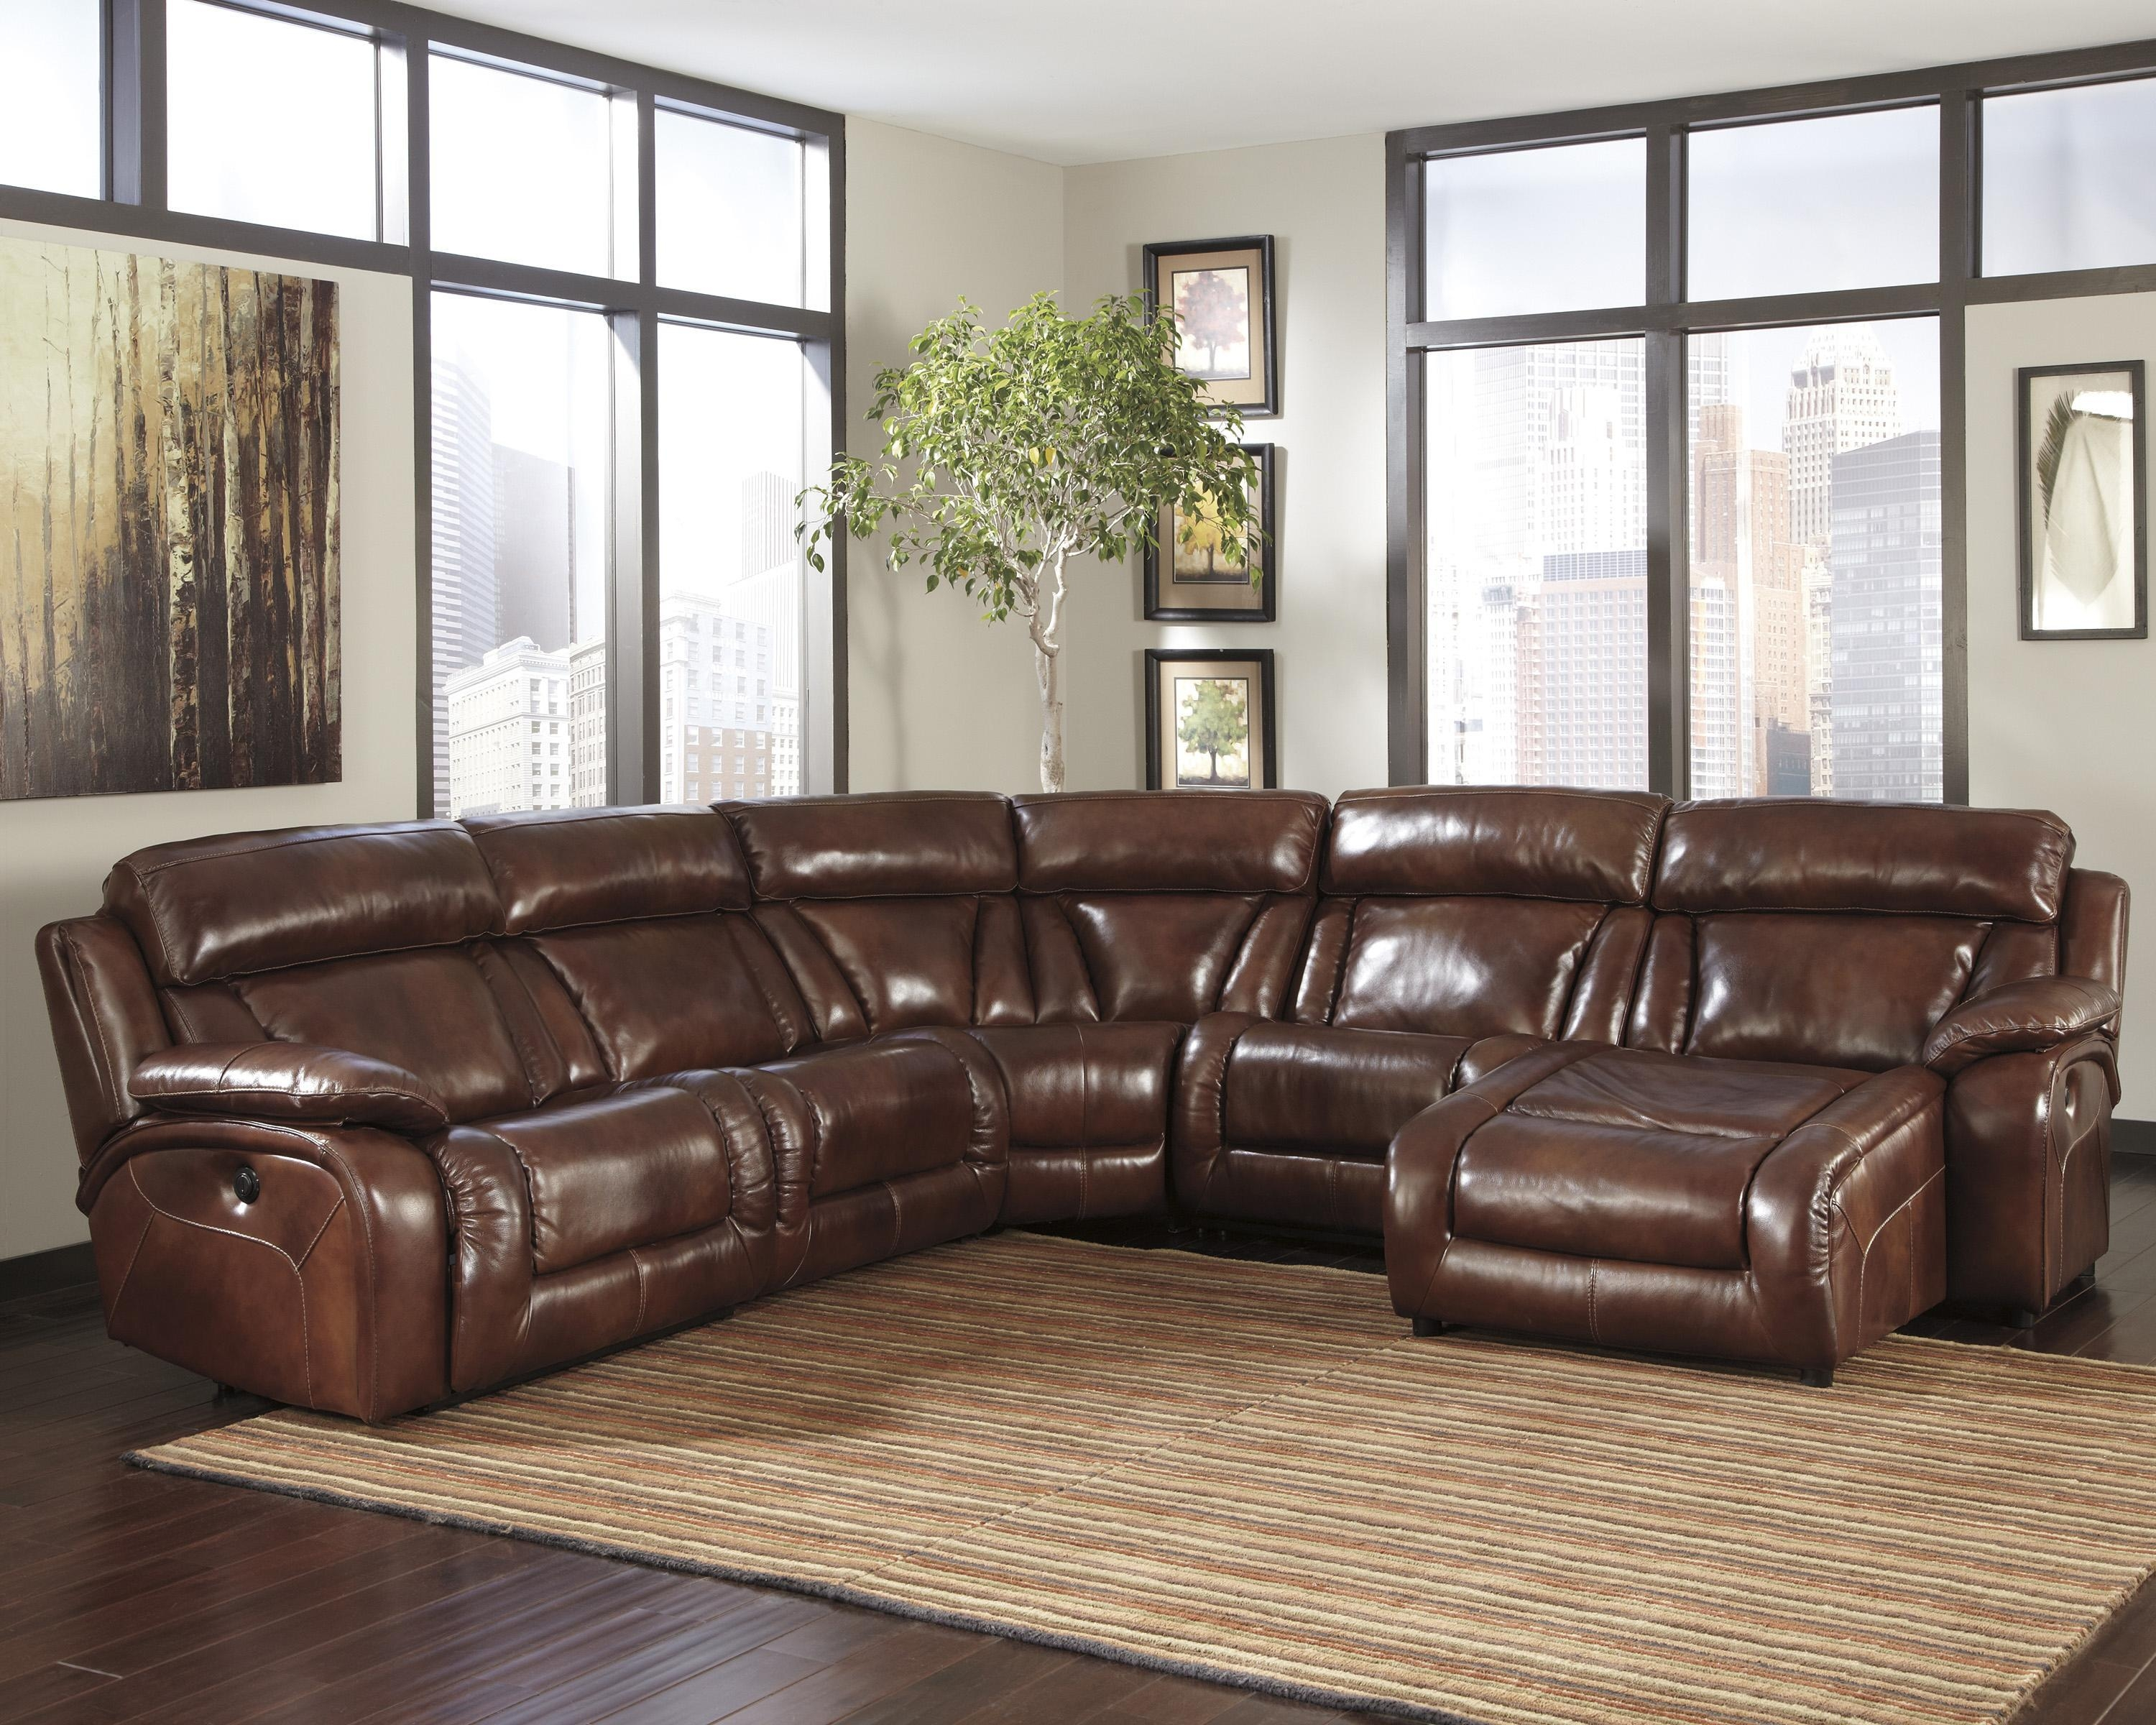 Decorating: Fill Your Living Room With Elegant Ashley Furniture In Ashley Furniture Leather Sectional Sofas (Image 9 of 20)